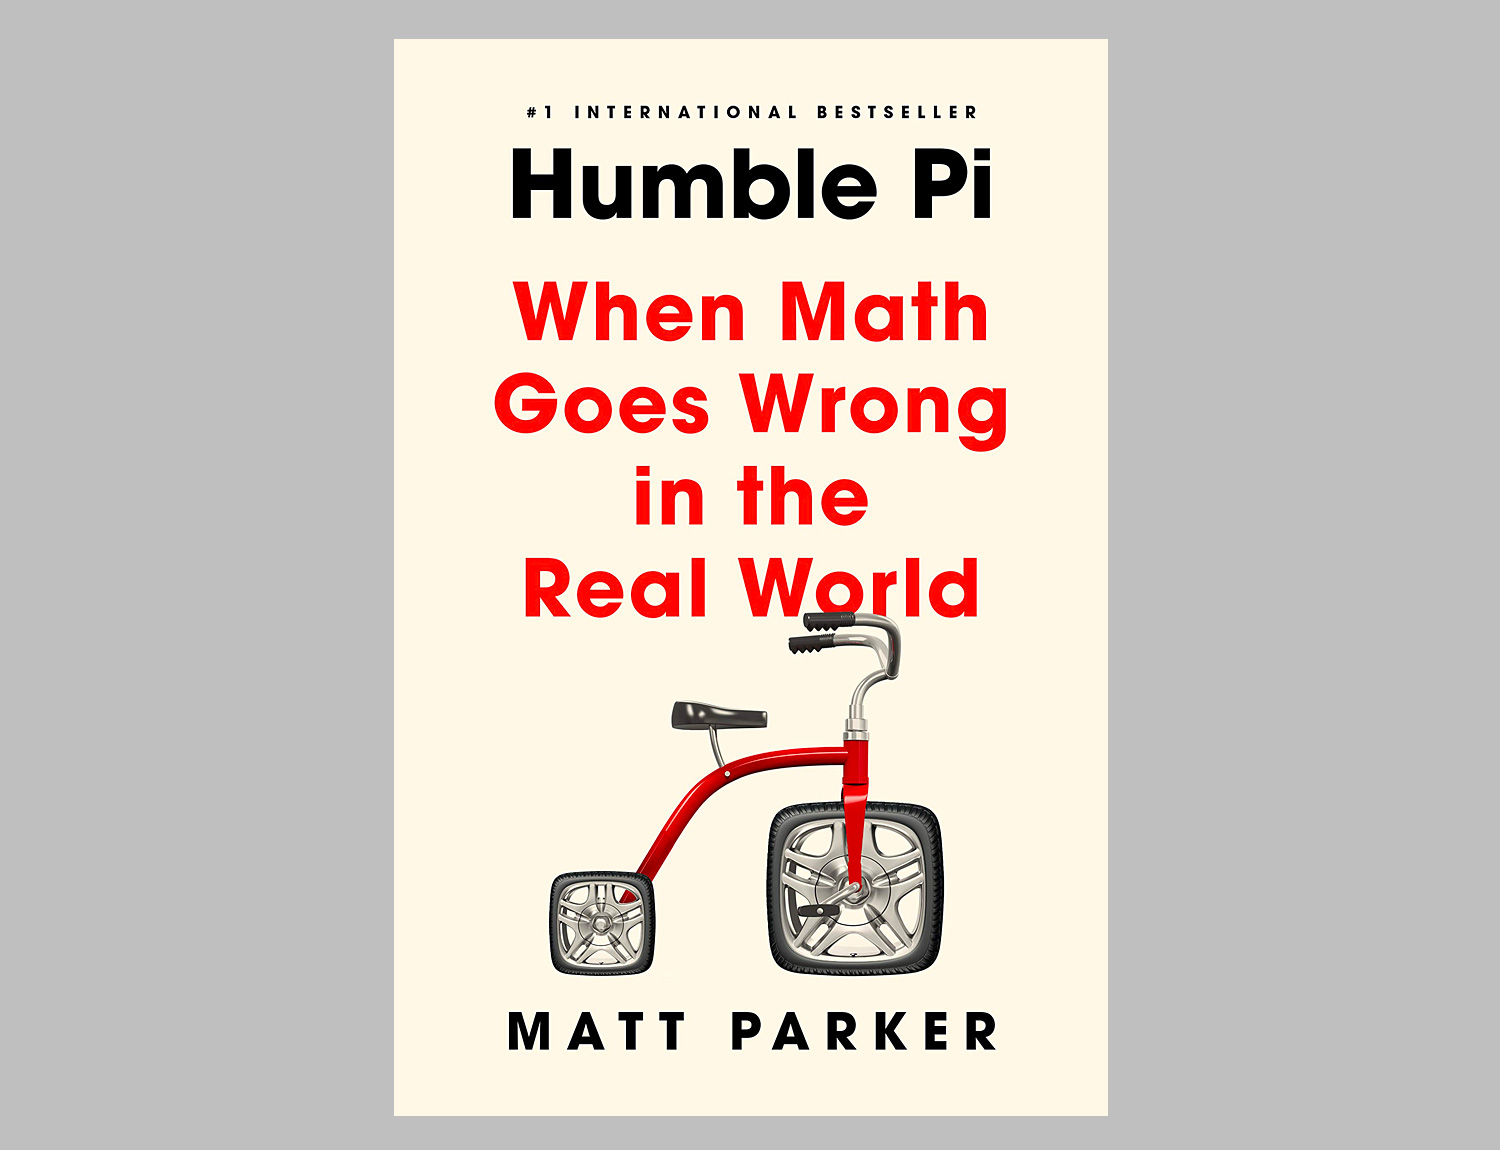 Humble Pi: When Math Goes Wrong in the Real World at werd.com